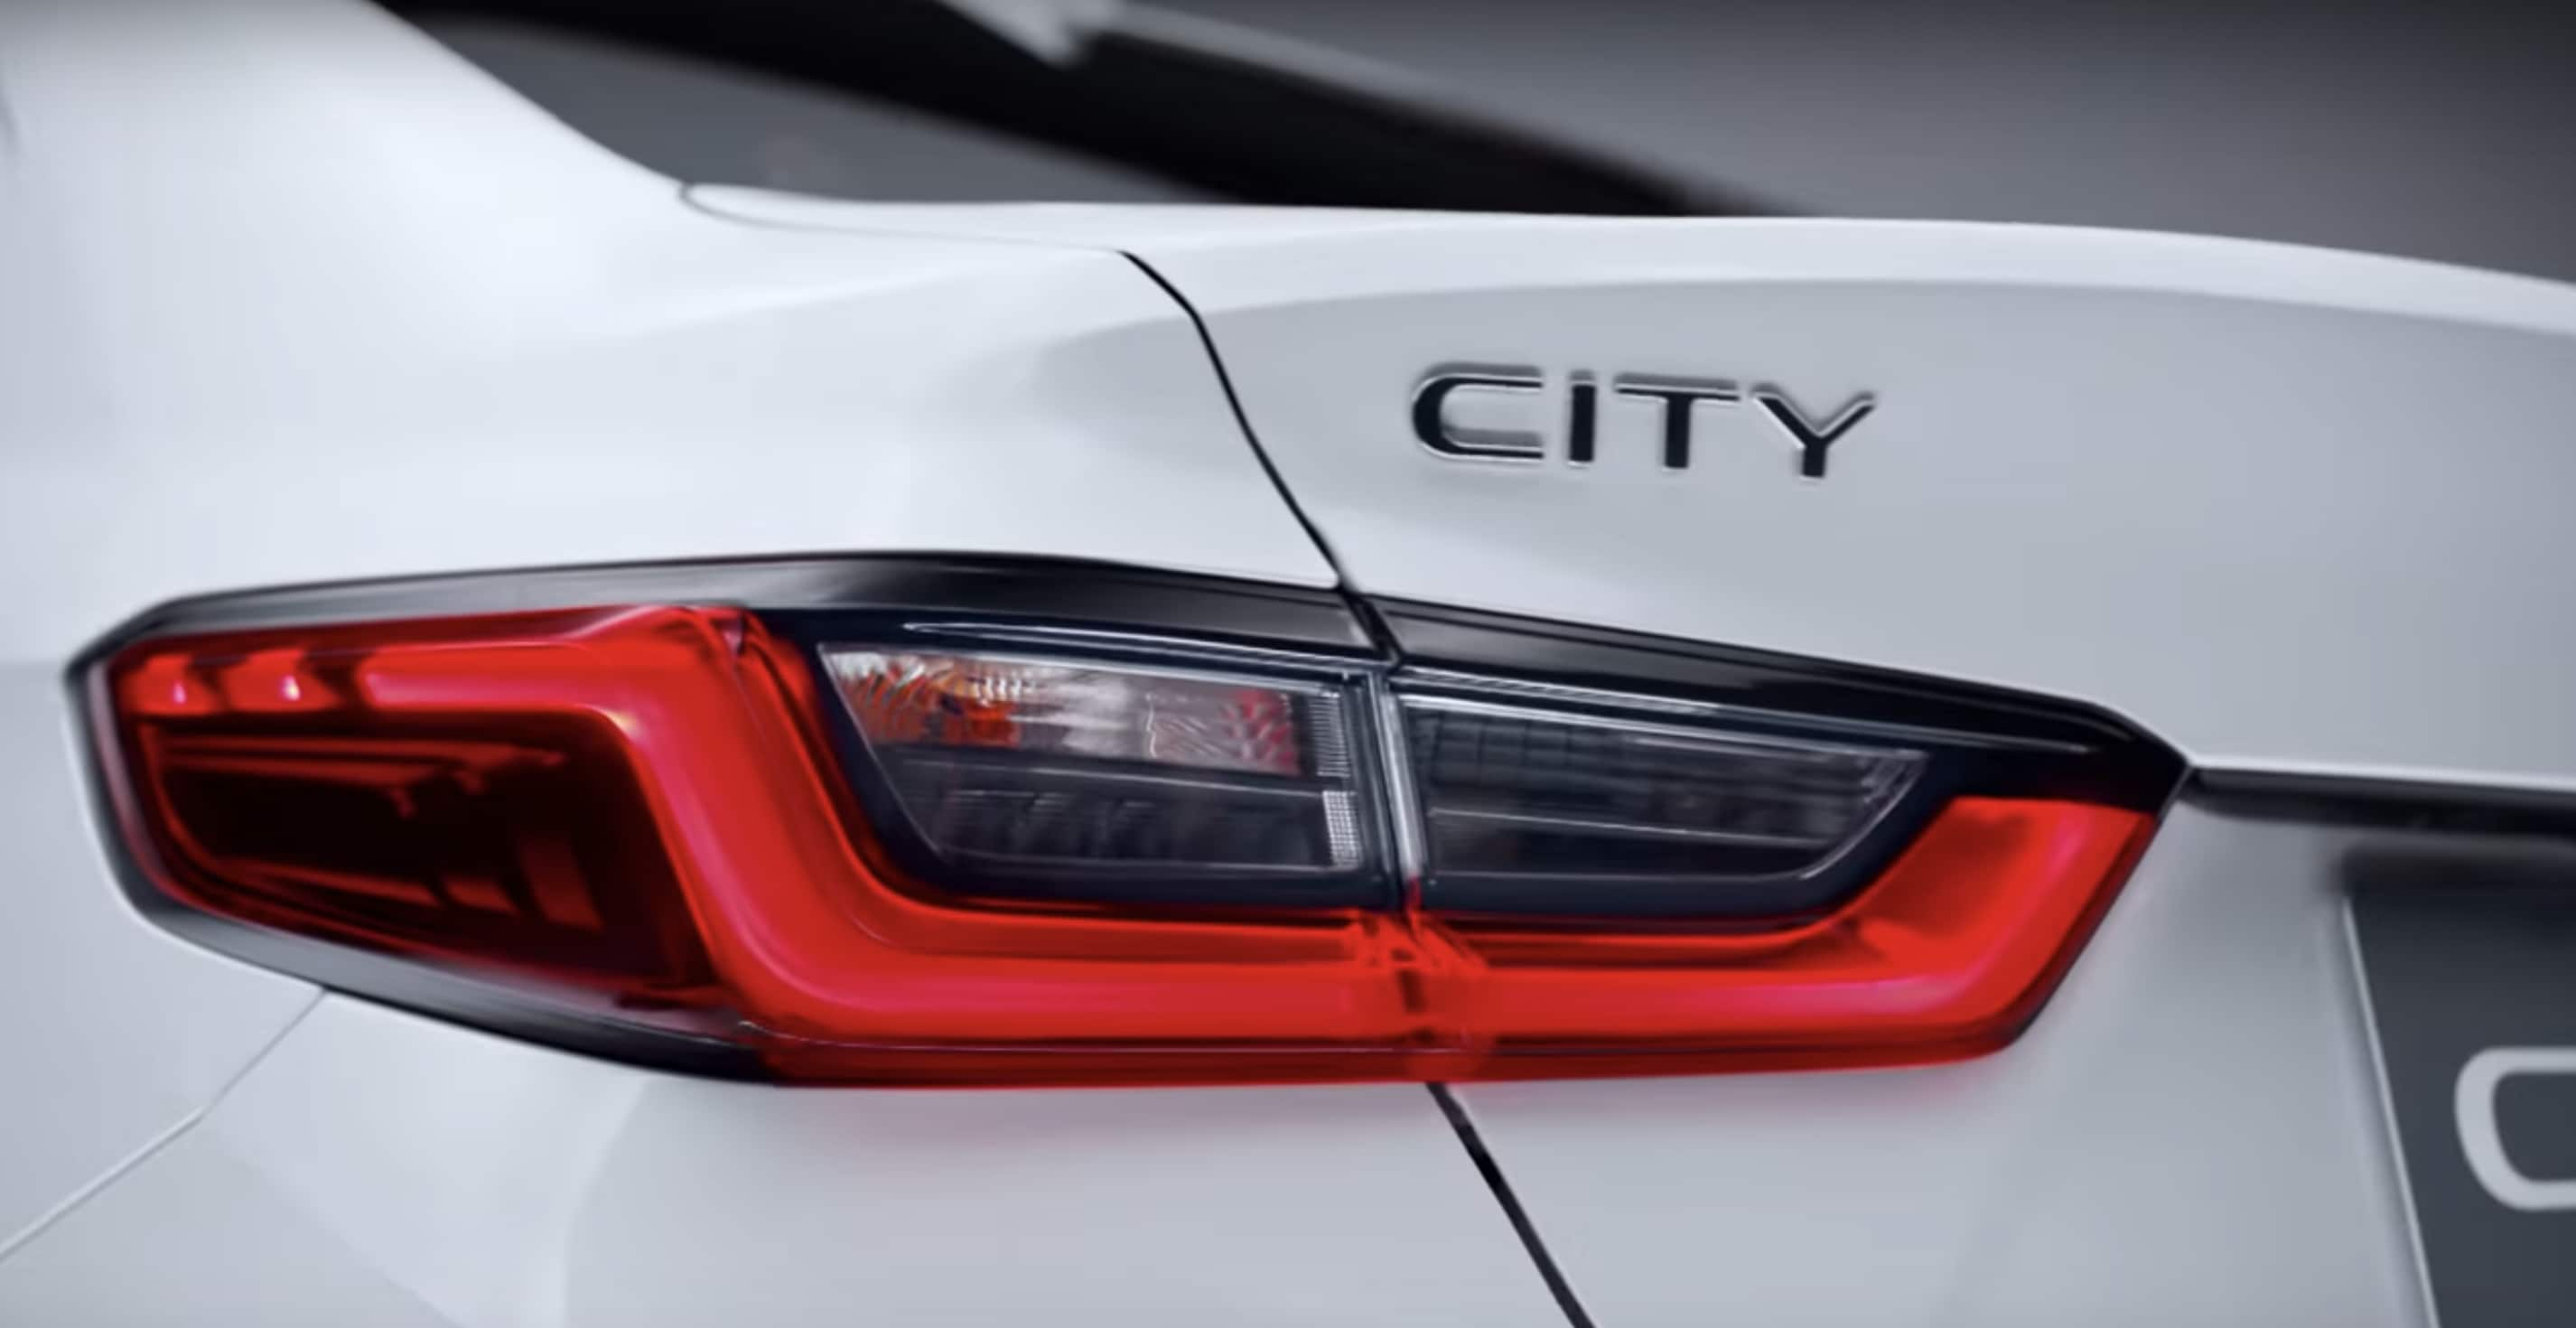 The rear lights on the 2020 City gets LED elements. Photo courtesy: Youtube/Honda Thailand